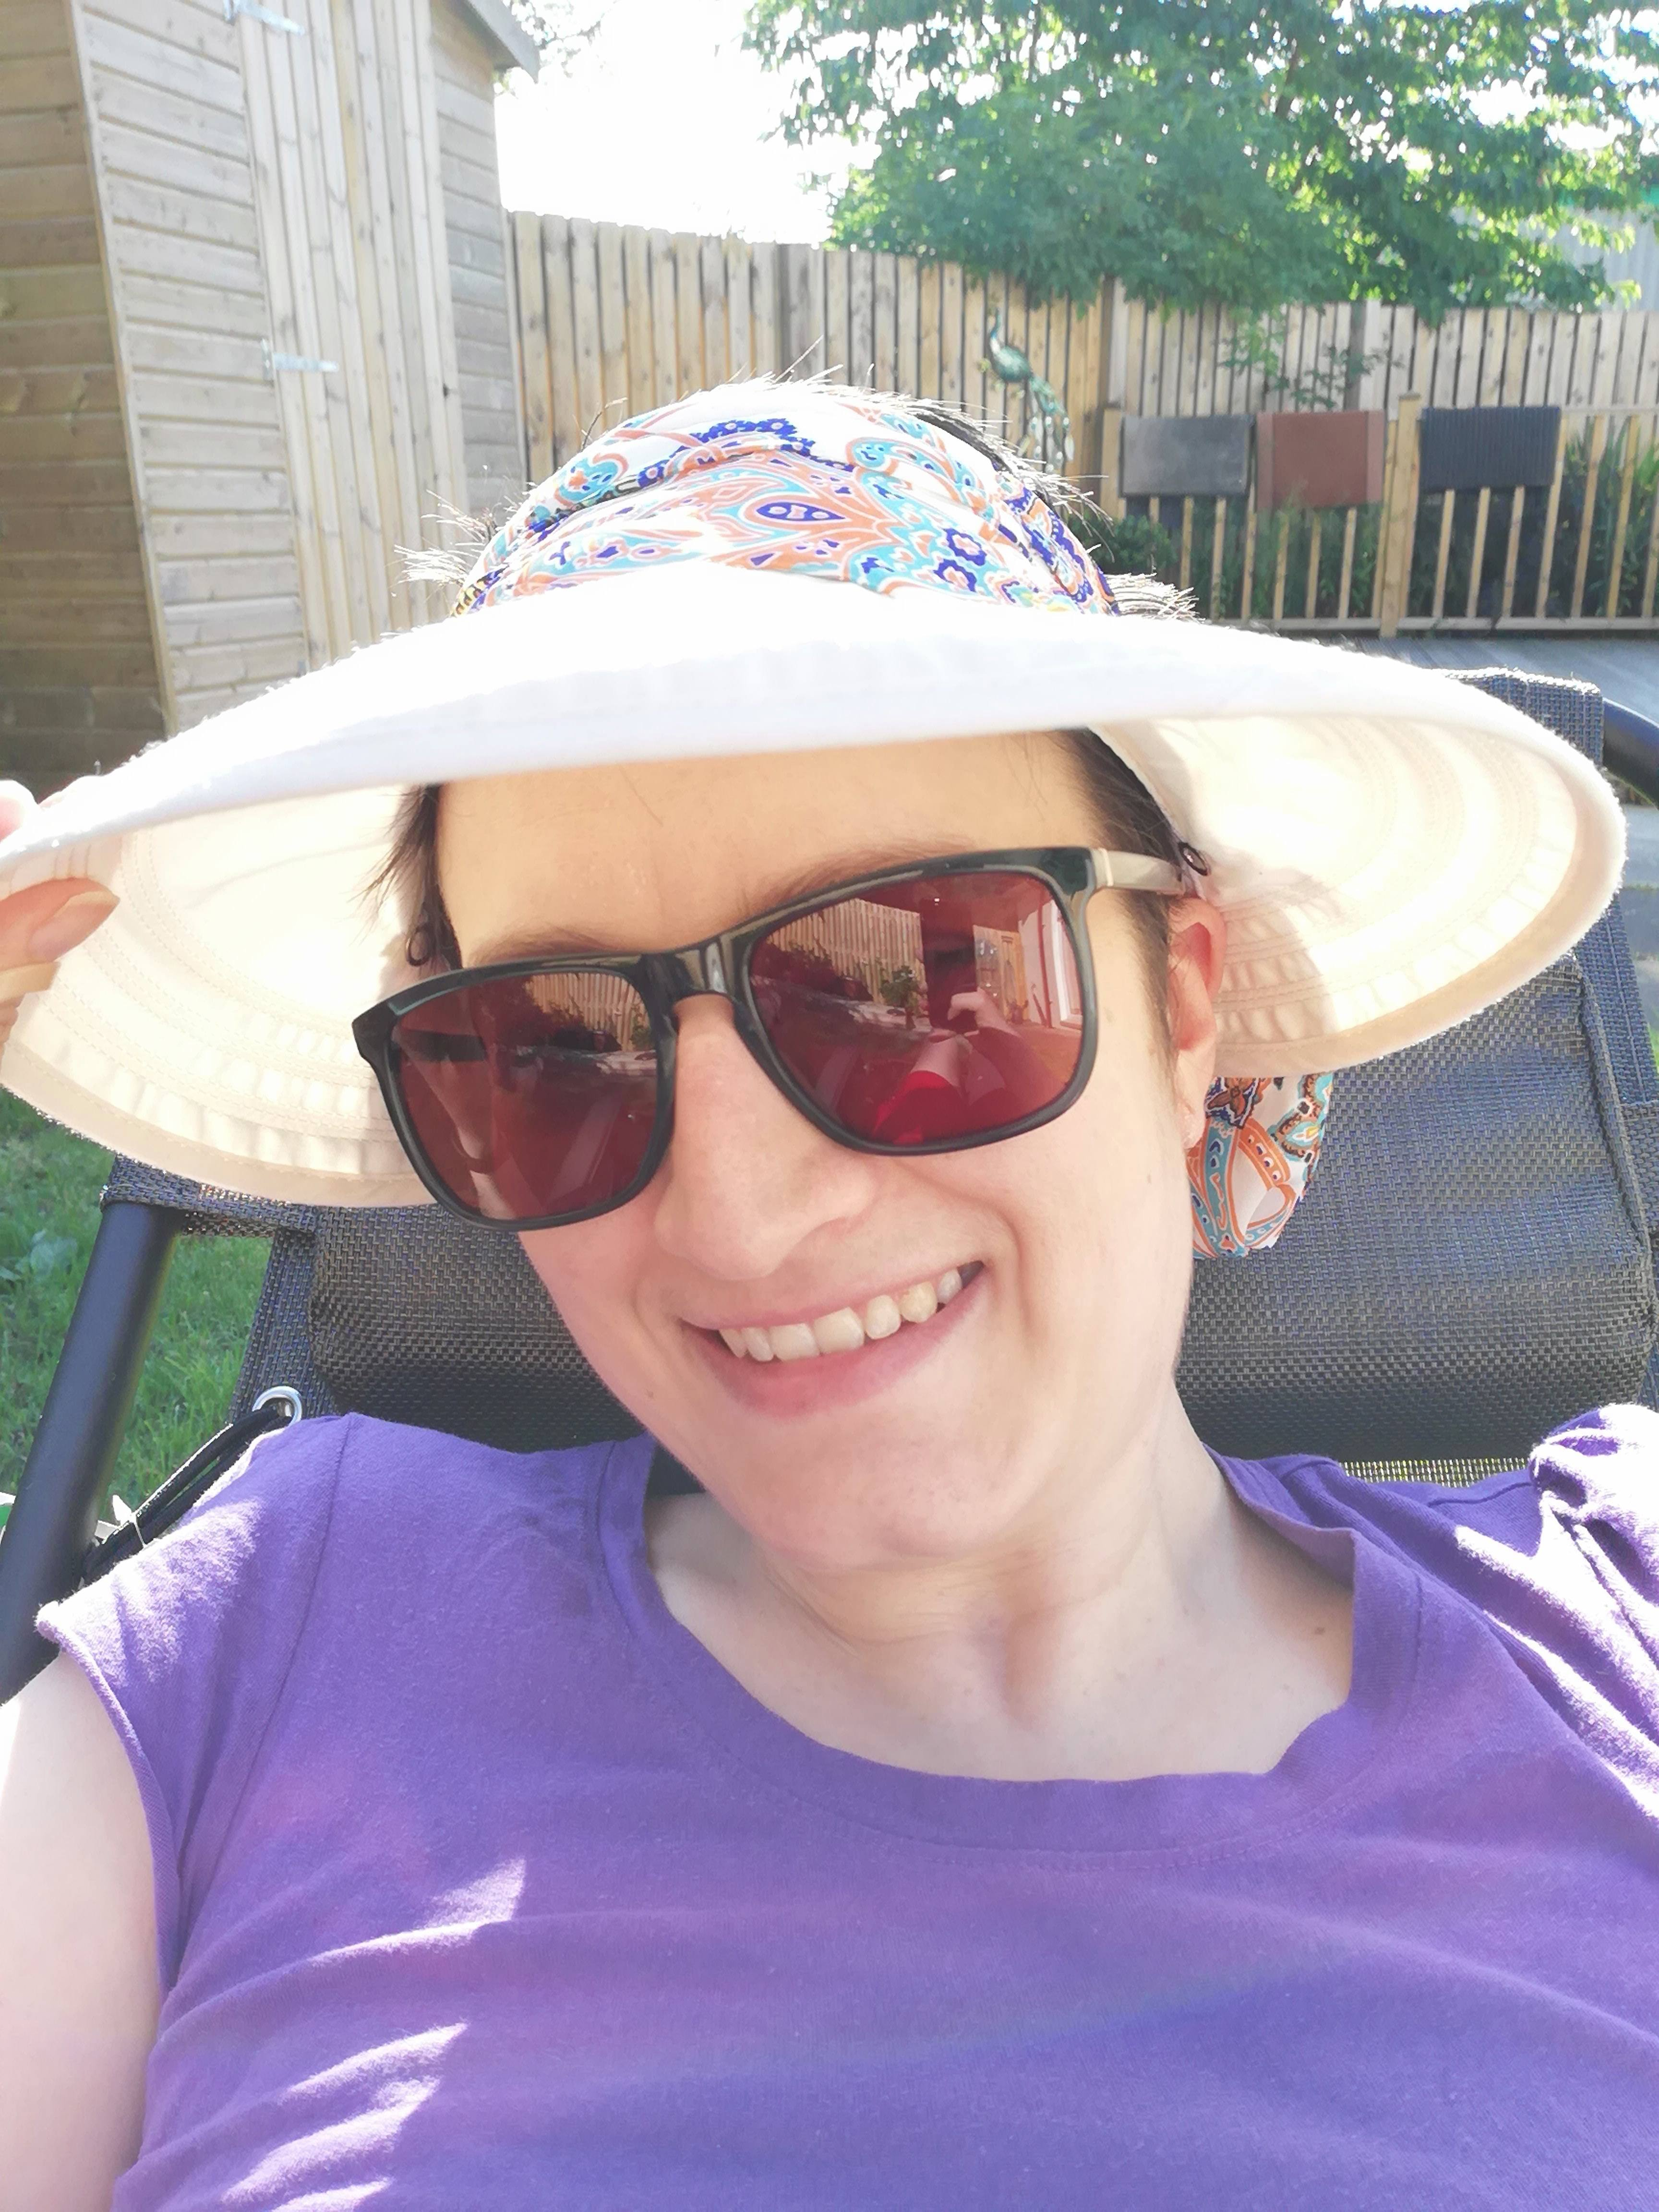 Char lying on garden recliner. She's wearing a sun hat and sunglasses